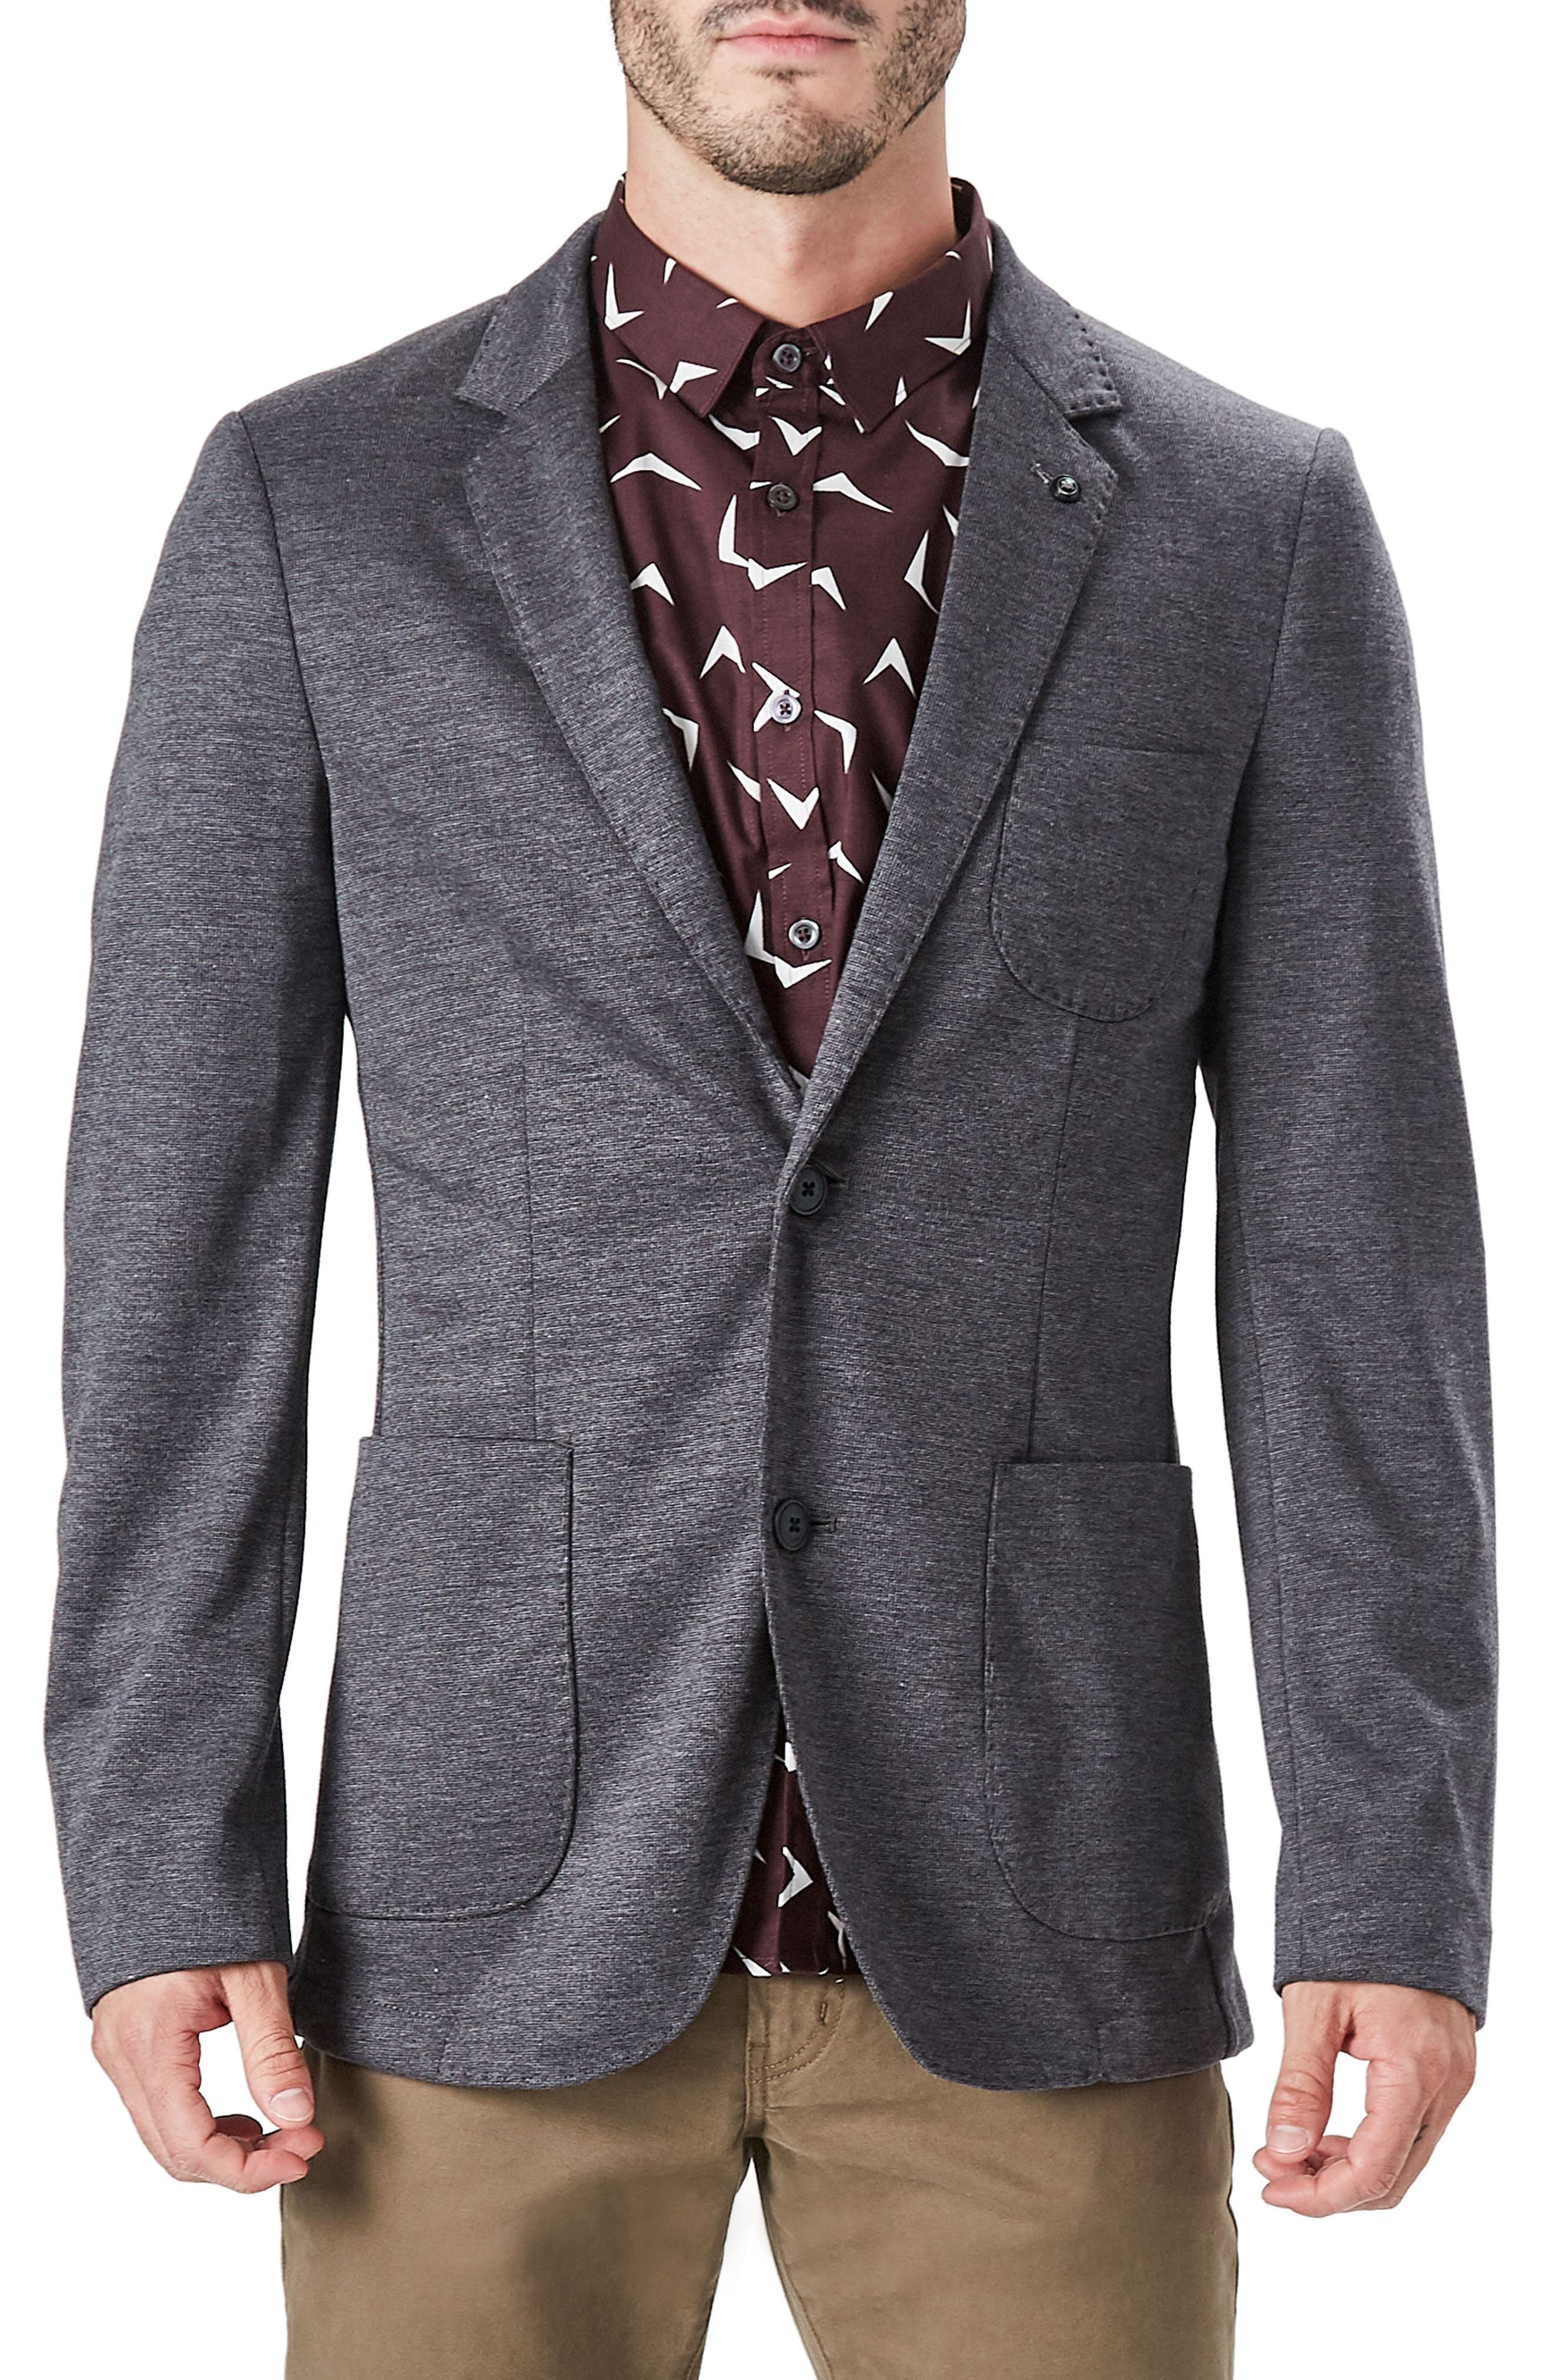 Massa Casual Blazer,                             Main thumbnail 1, color,                             020